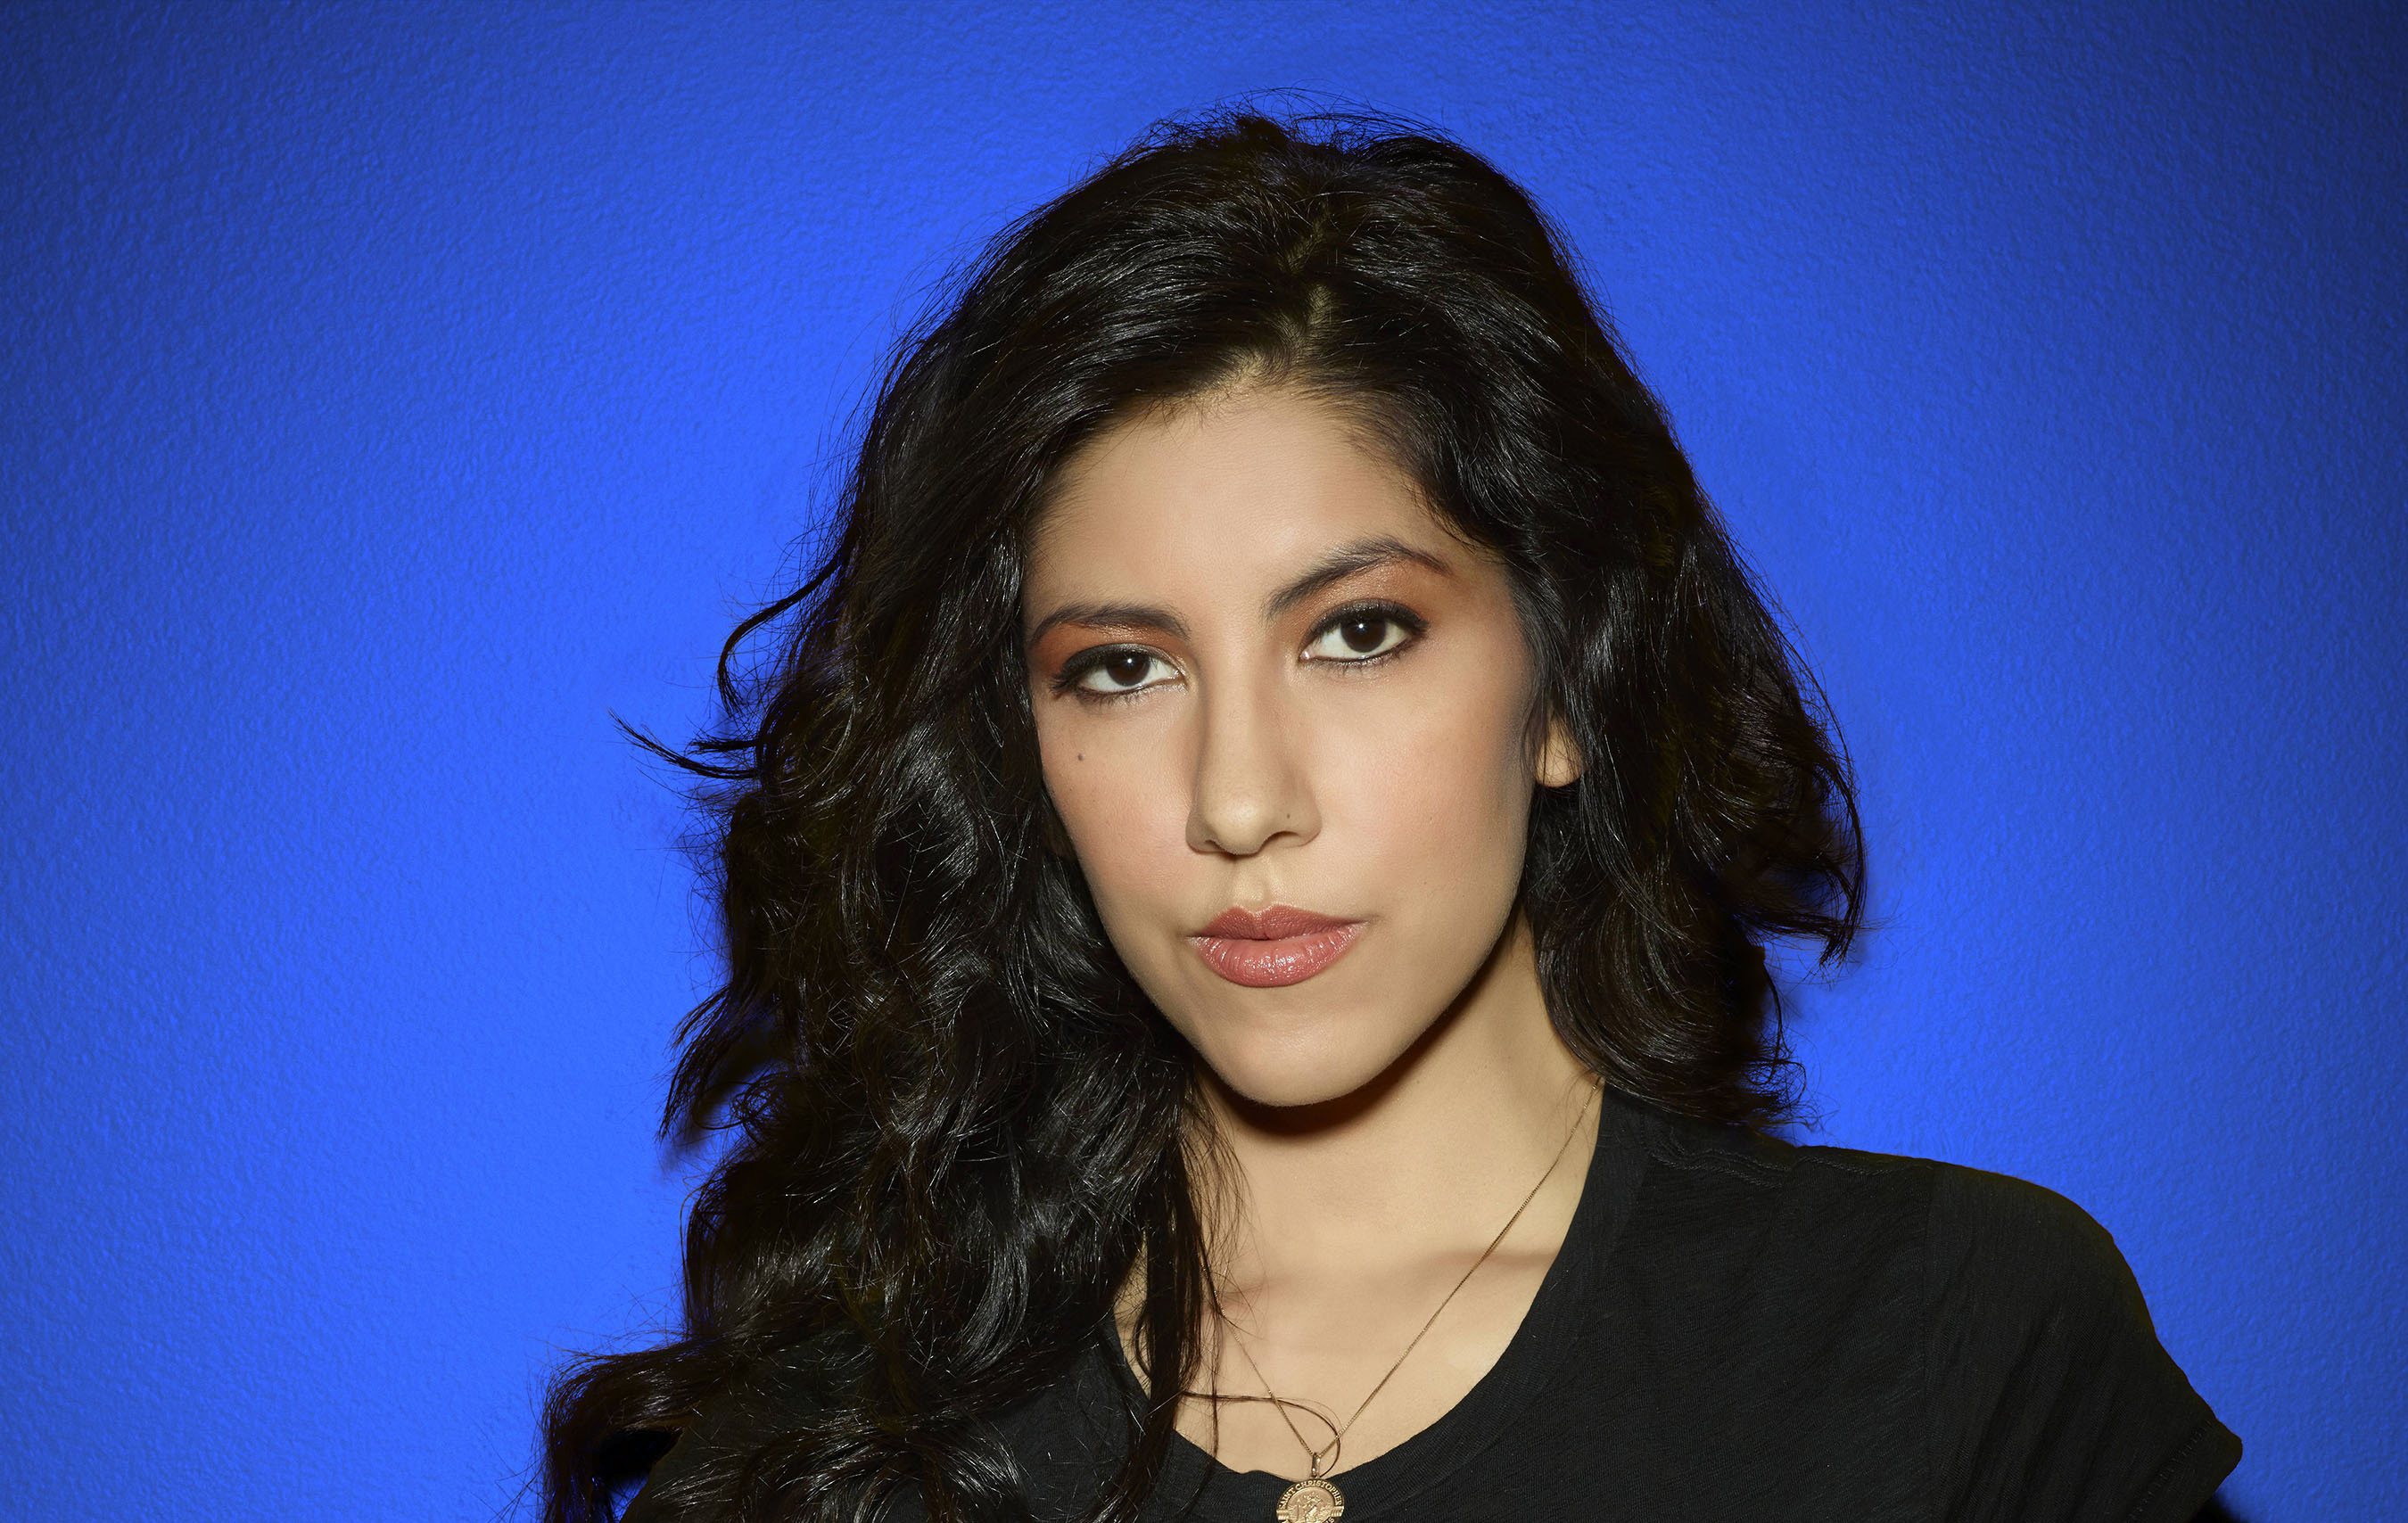 stephanie beatriz hd wallpaper background 56647